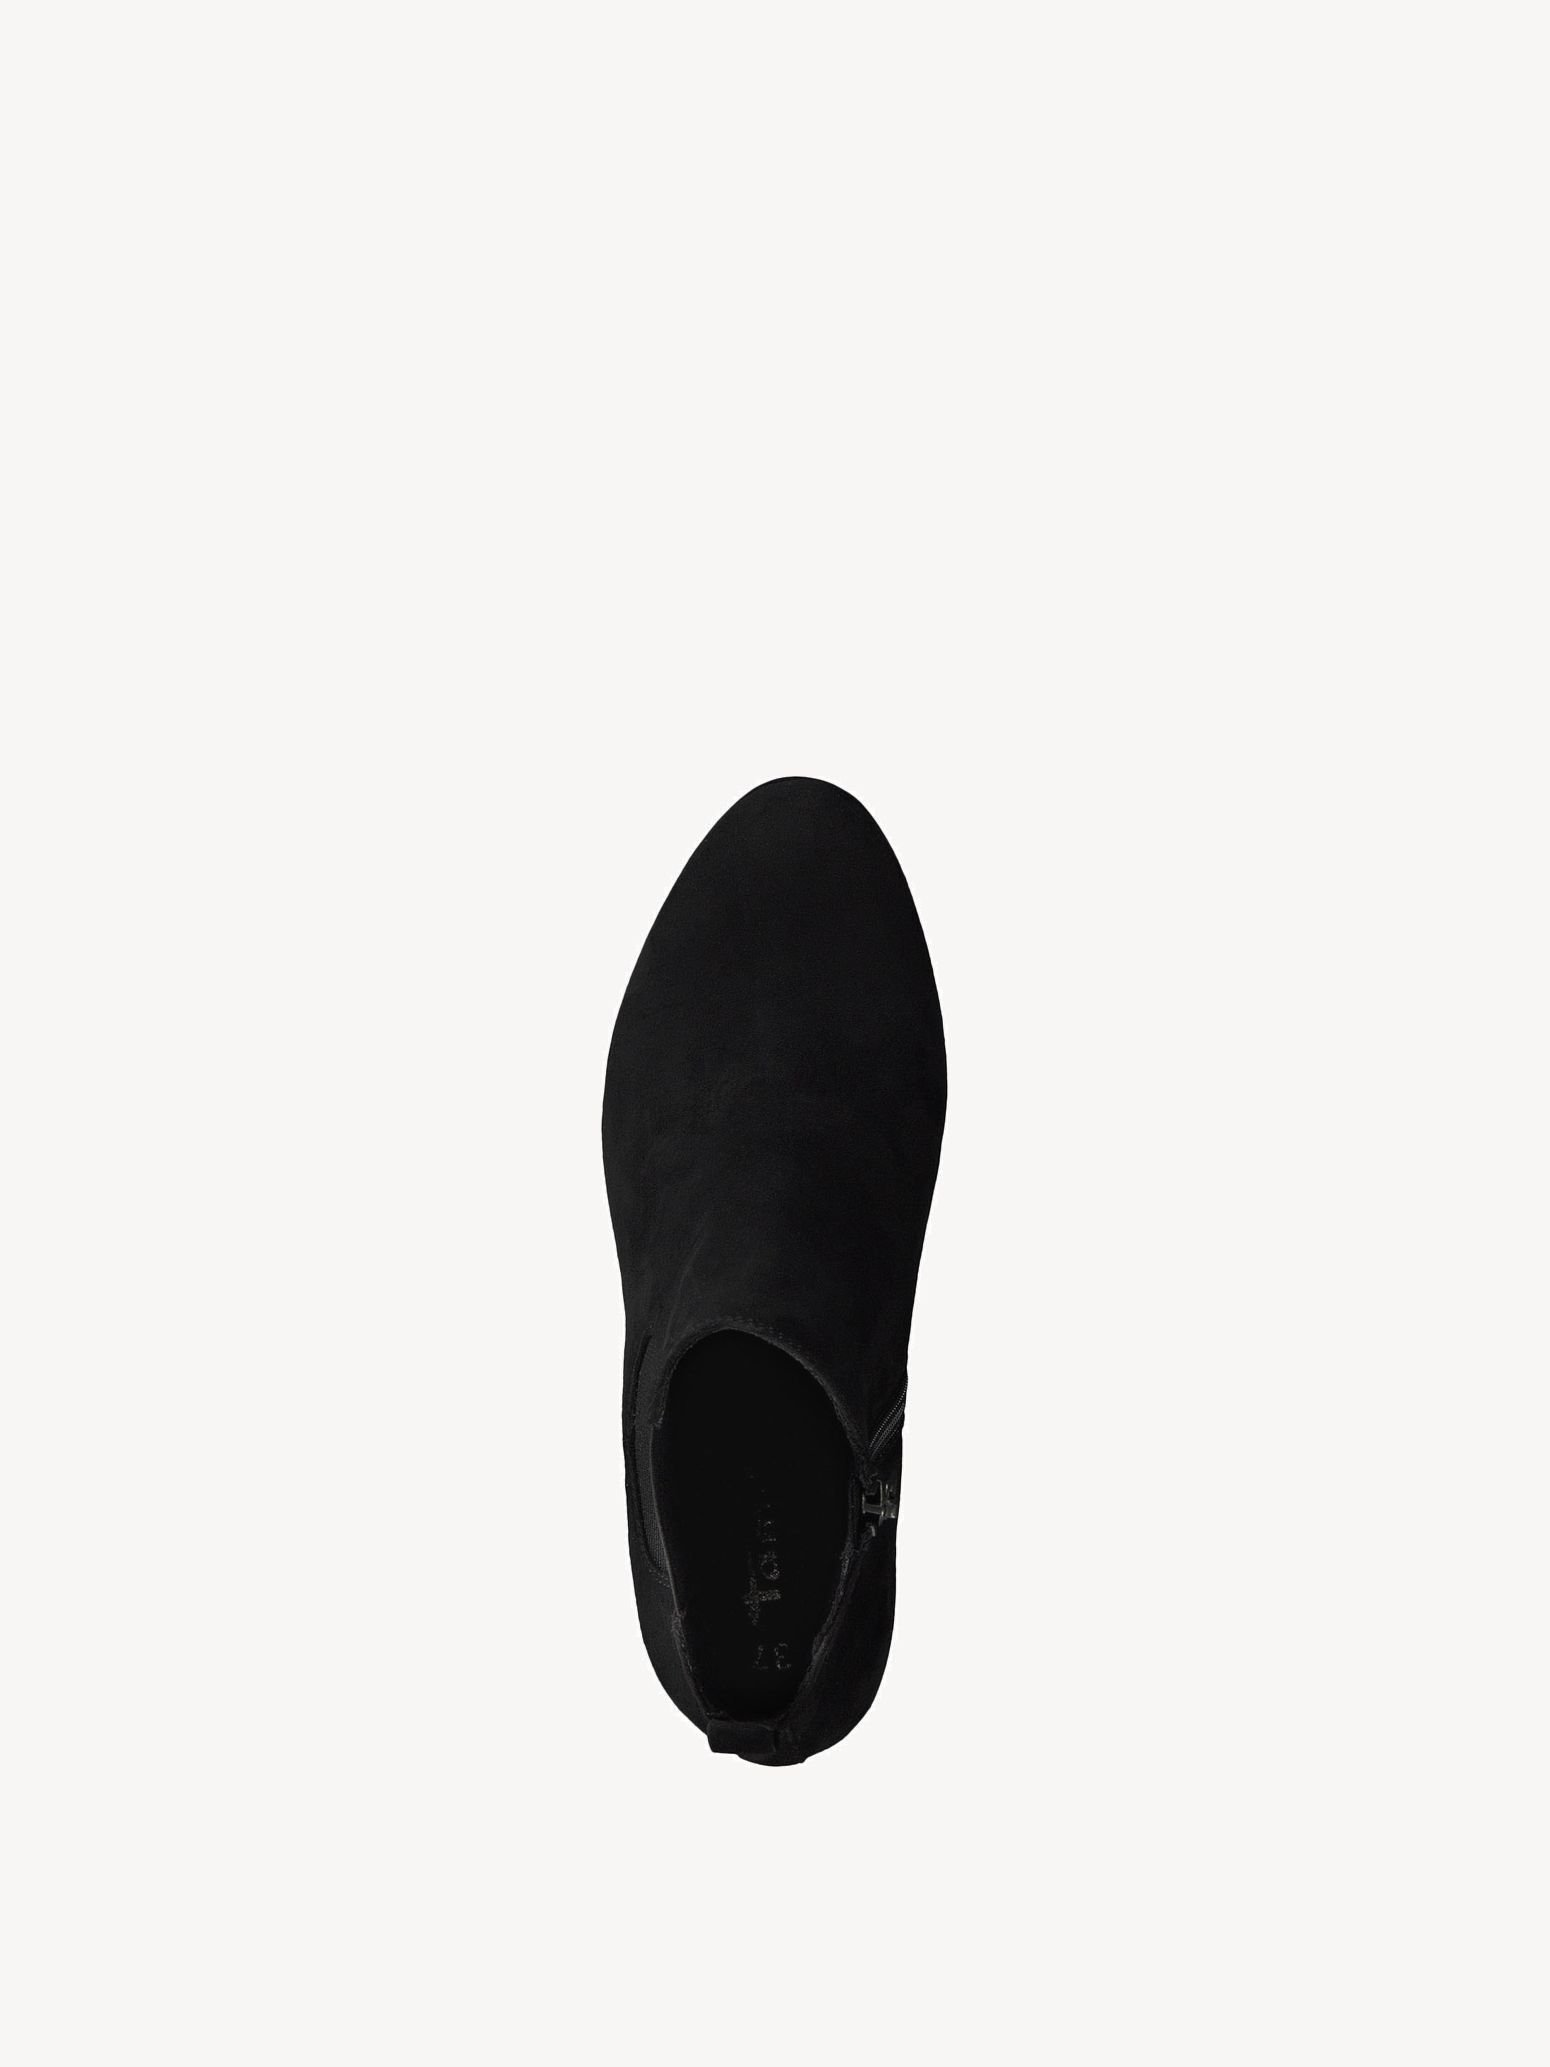 Chelsea boot - black, BLACK, hi-res